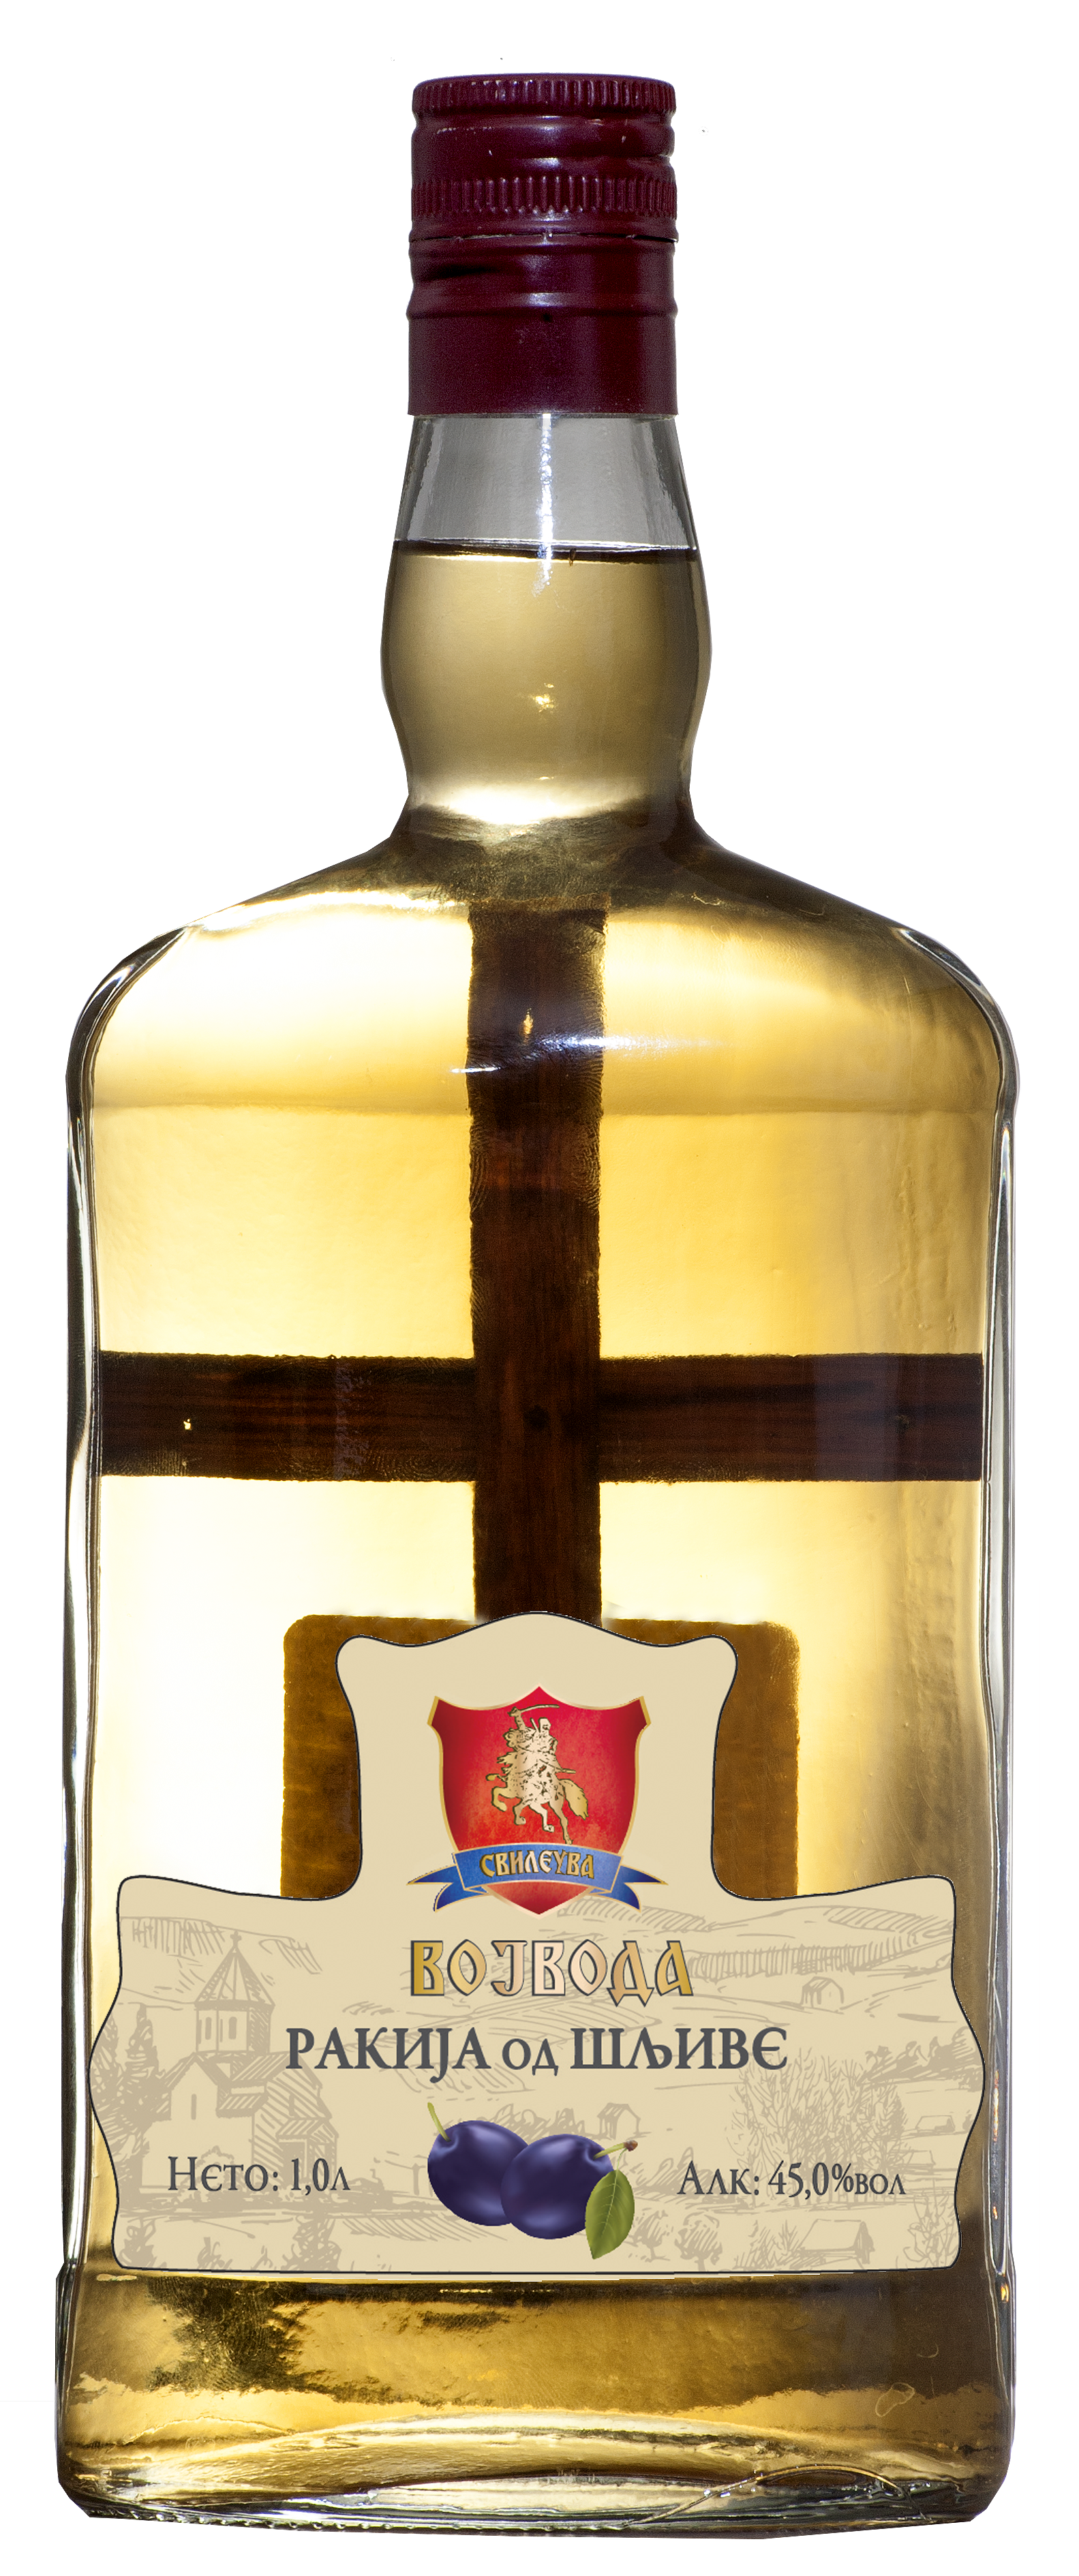 Plum brandy Slivovitz Vojvoda with a cross